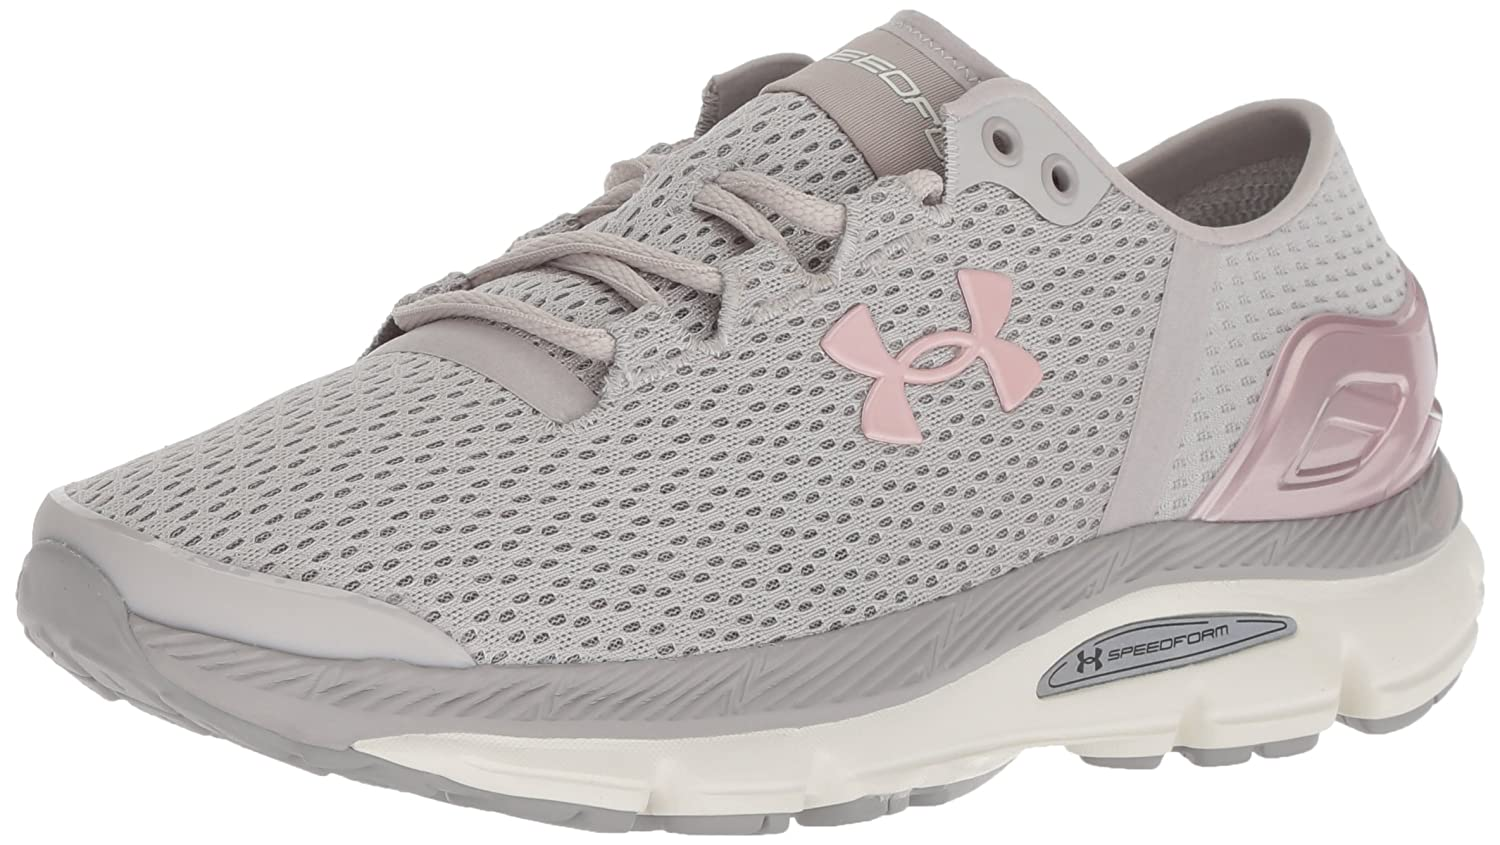 Under Armour Women's Speedform Intake 2 Running Shoe B07768GP62 9 M US|Ghost Gray (101)/Tin